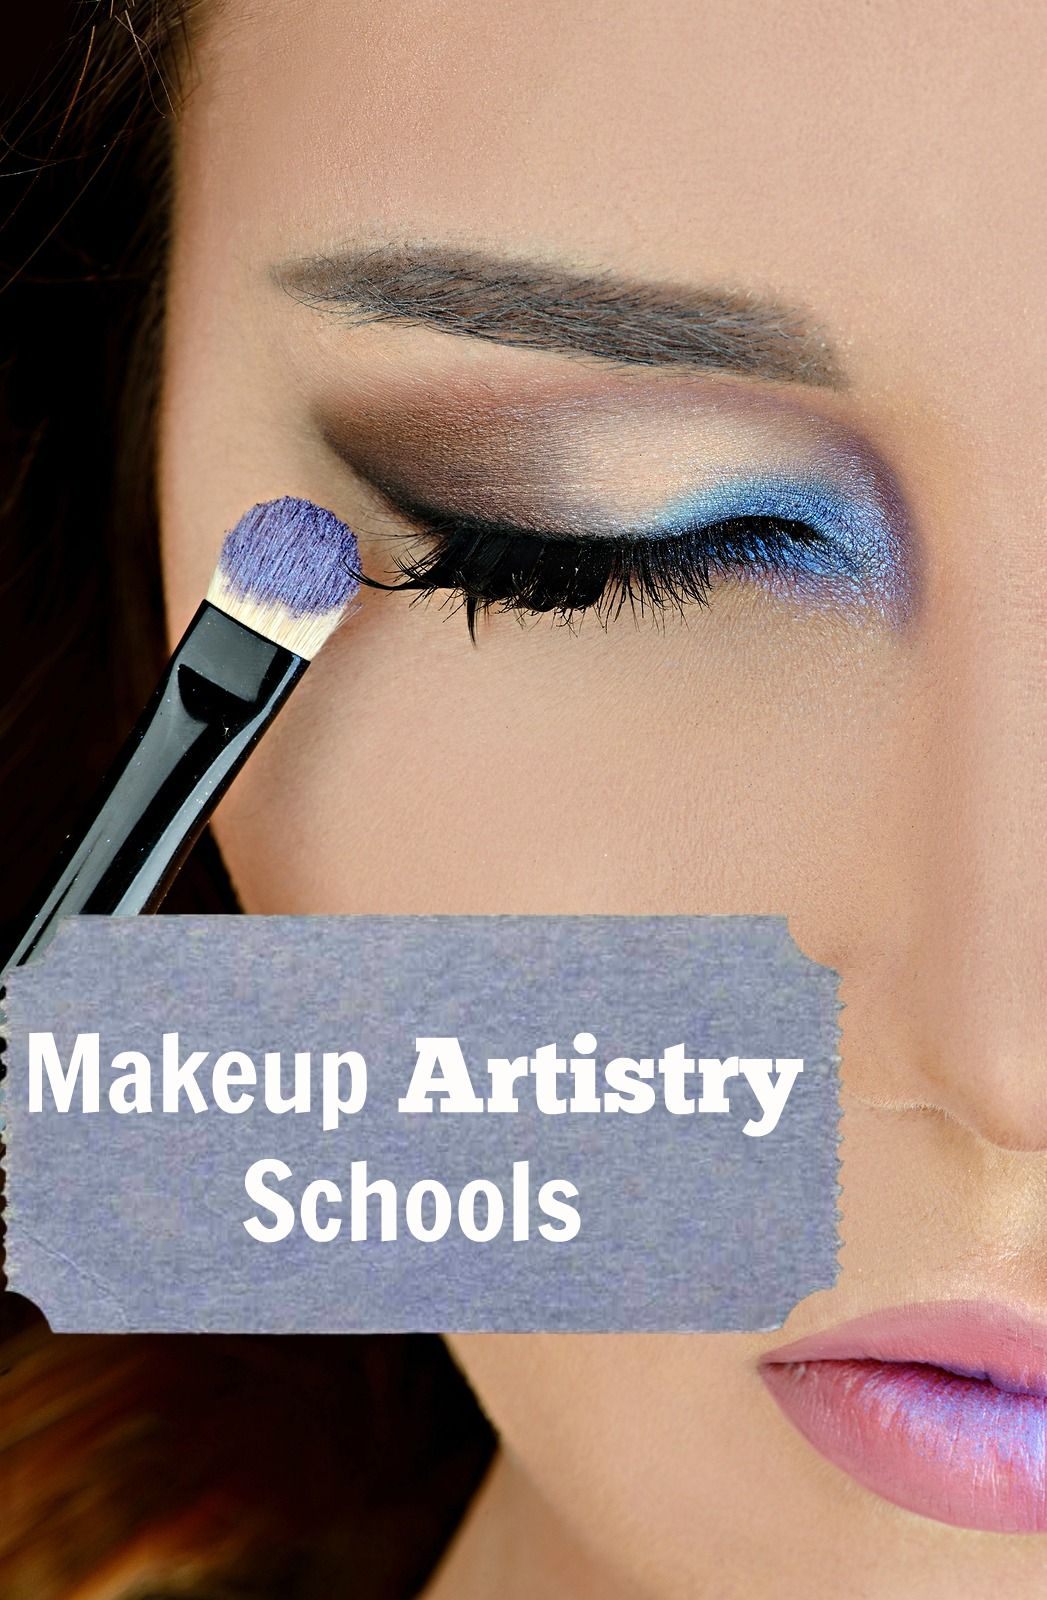 Dream of a Makeup Artist? Here's What to Do